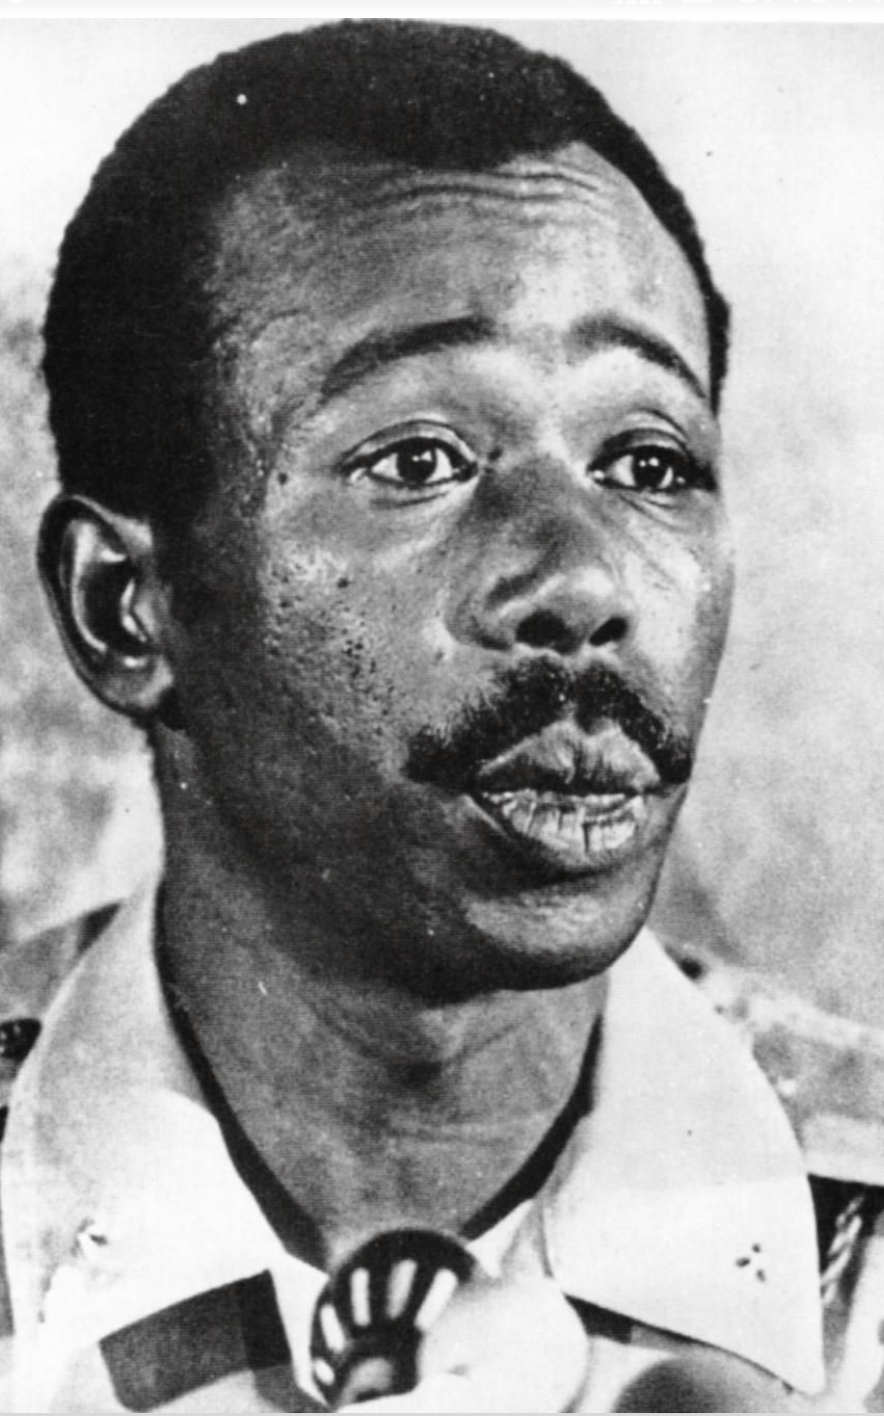 WHO DID IT? THE UNTOLD STORY OF MENGISTU HAILE-MARIAM AND ABDIRAHMAN CAYDIID EXPOSED. READ THIS STORY FOR FREE